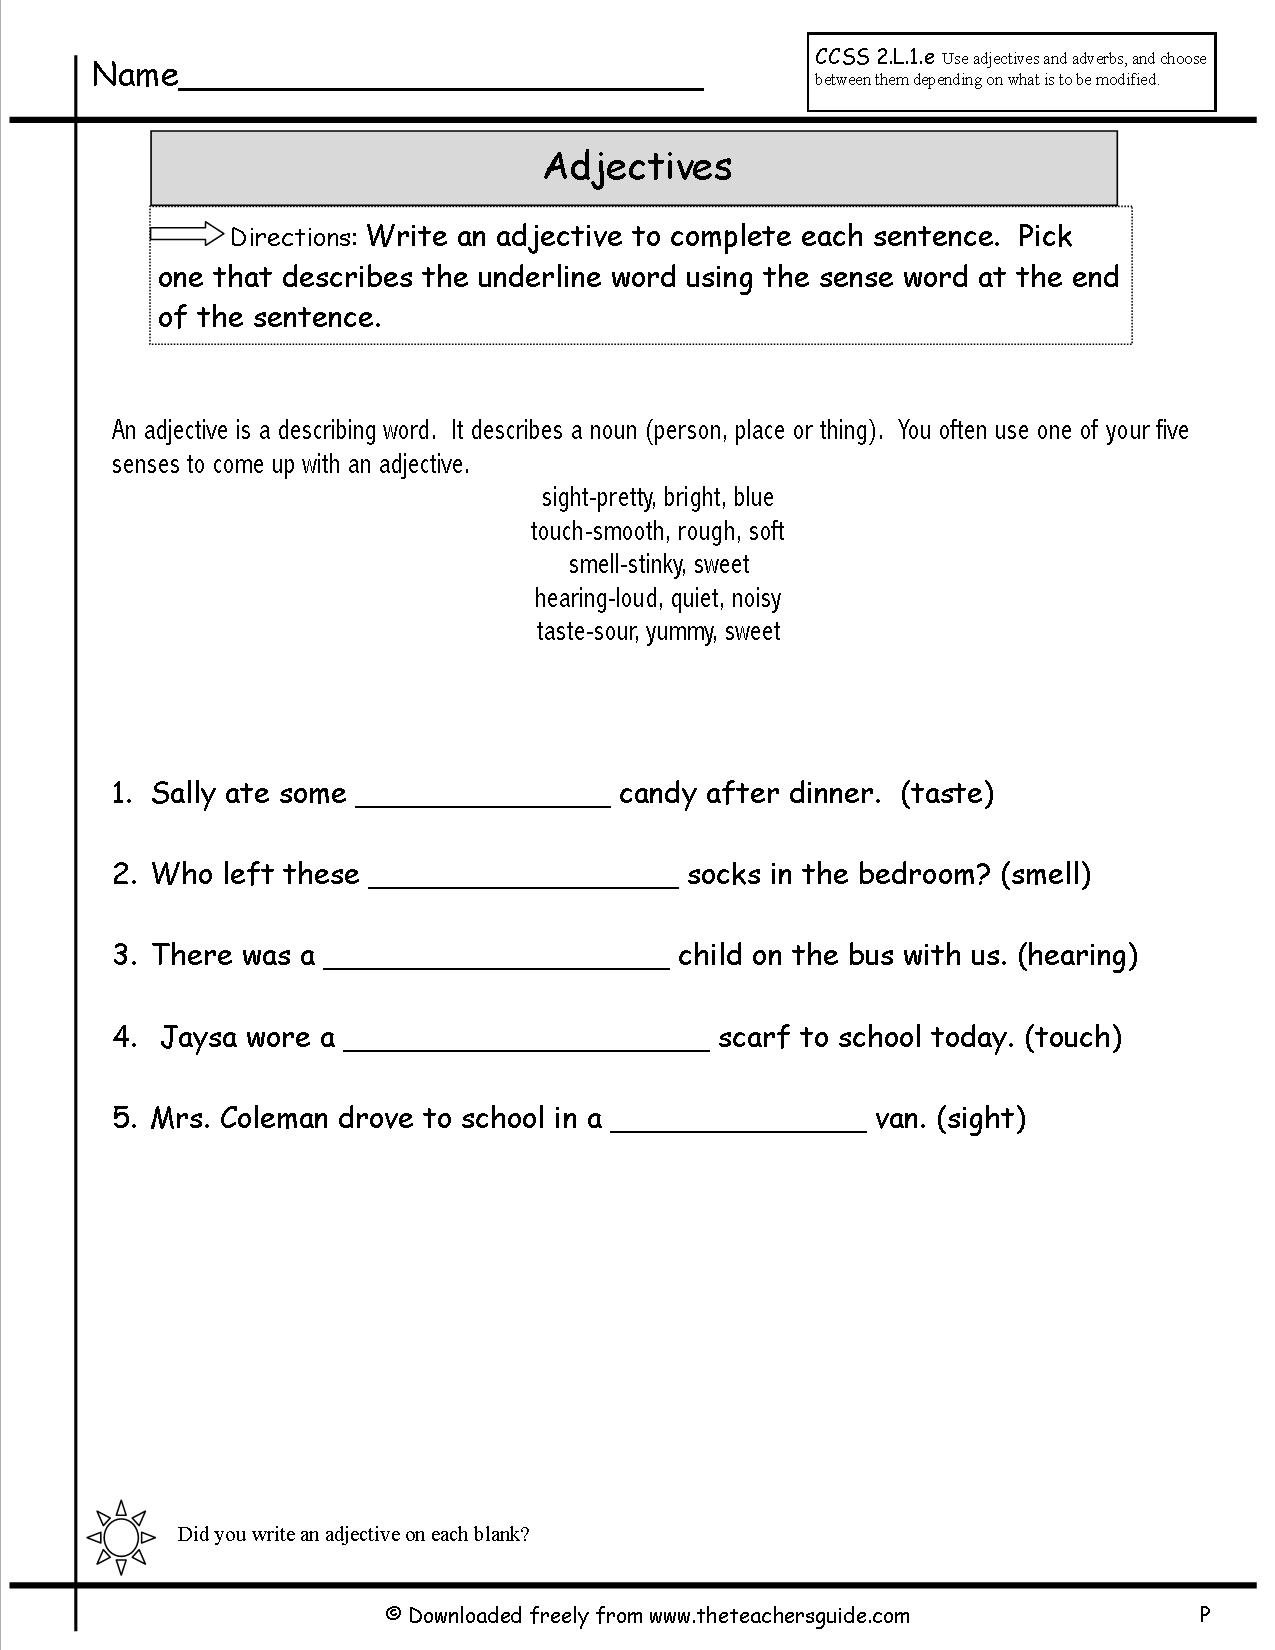 Adjectives Worksheets From The Teacher's Guide As Well As Words Used As Nouns And Adjectives Worksheet